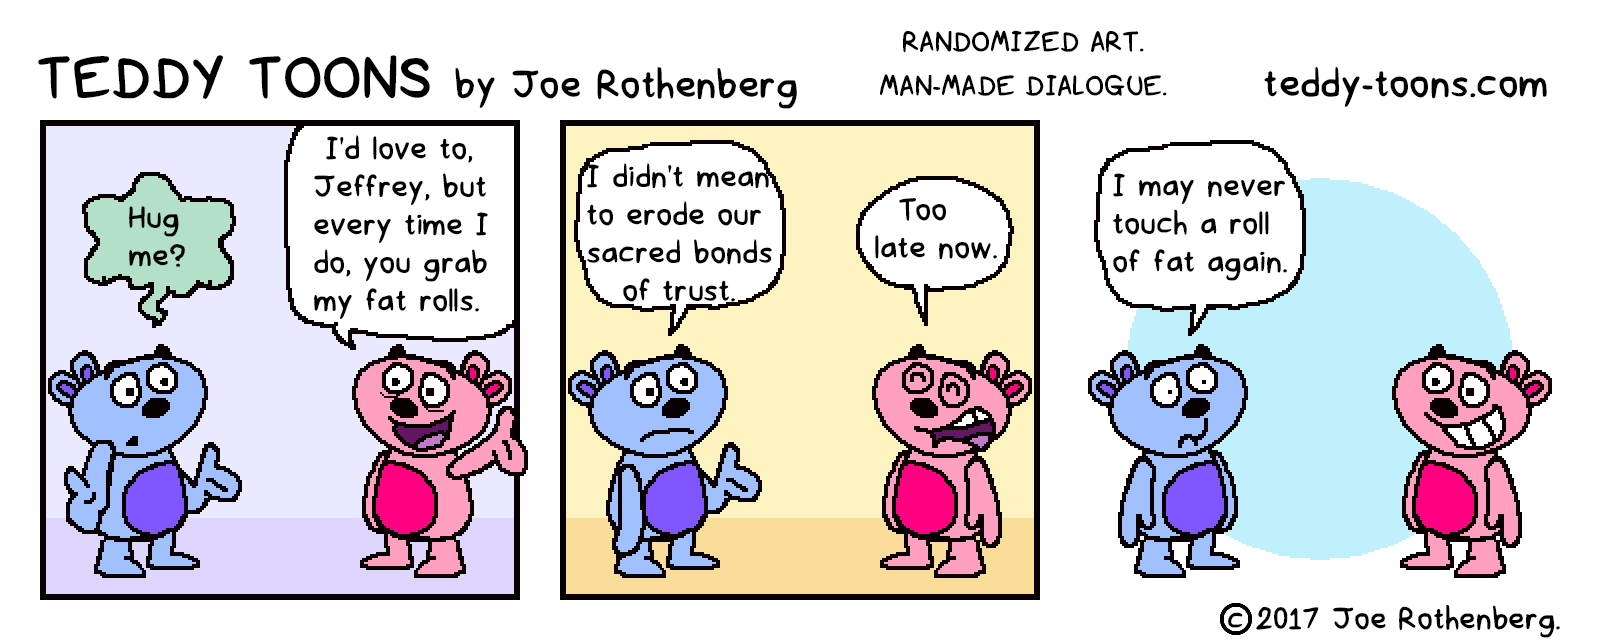 01-24-17.png